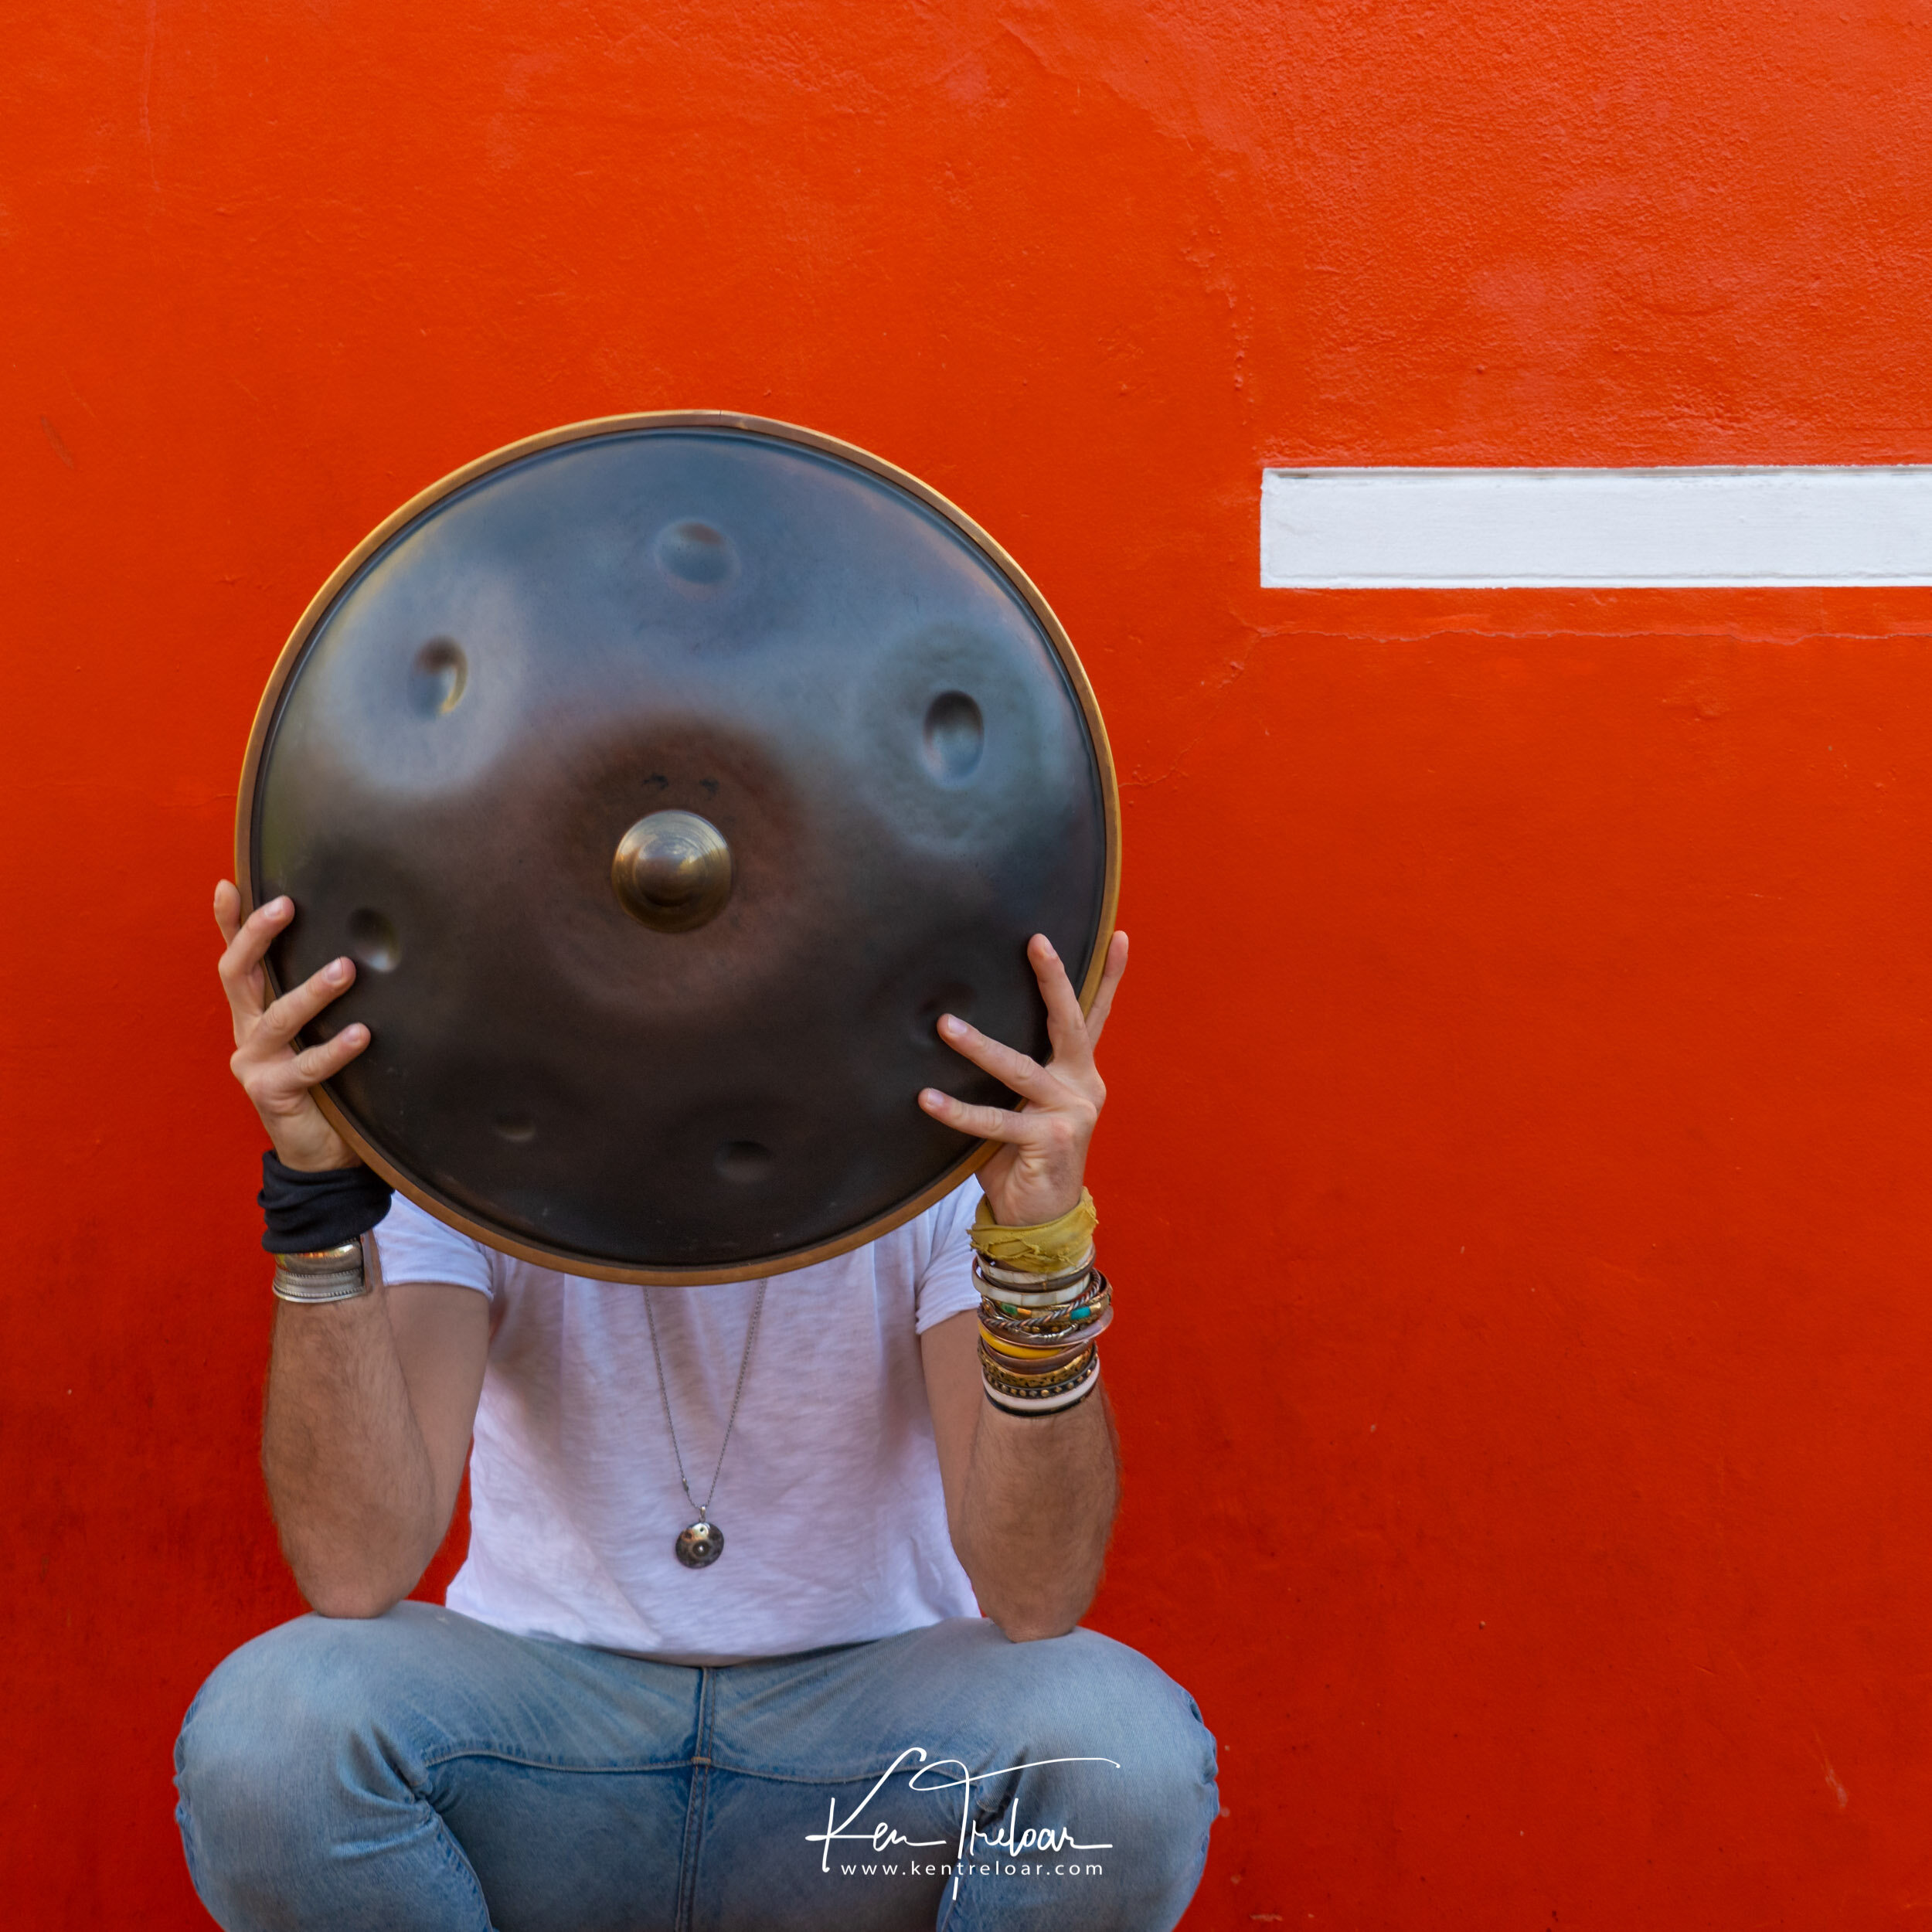 Marco Selvaggio Hang Musical Instrument - Bo-Kaap, Cape Town South Africa - Image by Ken Treloar Photography 2019-11.jpg